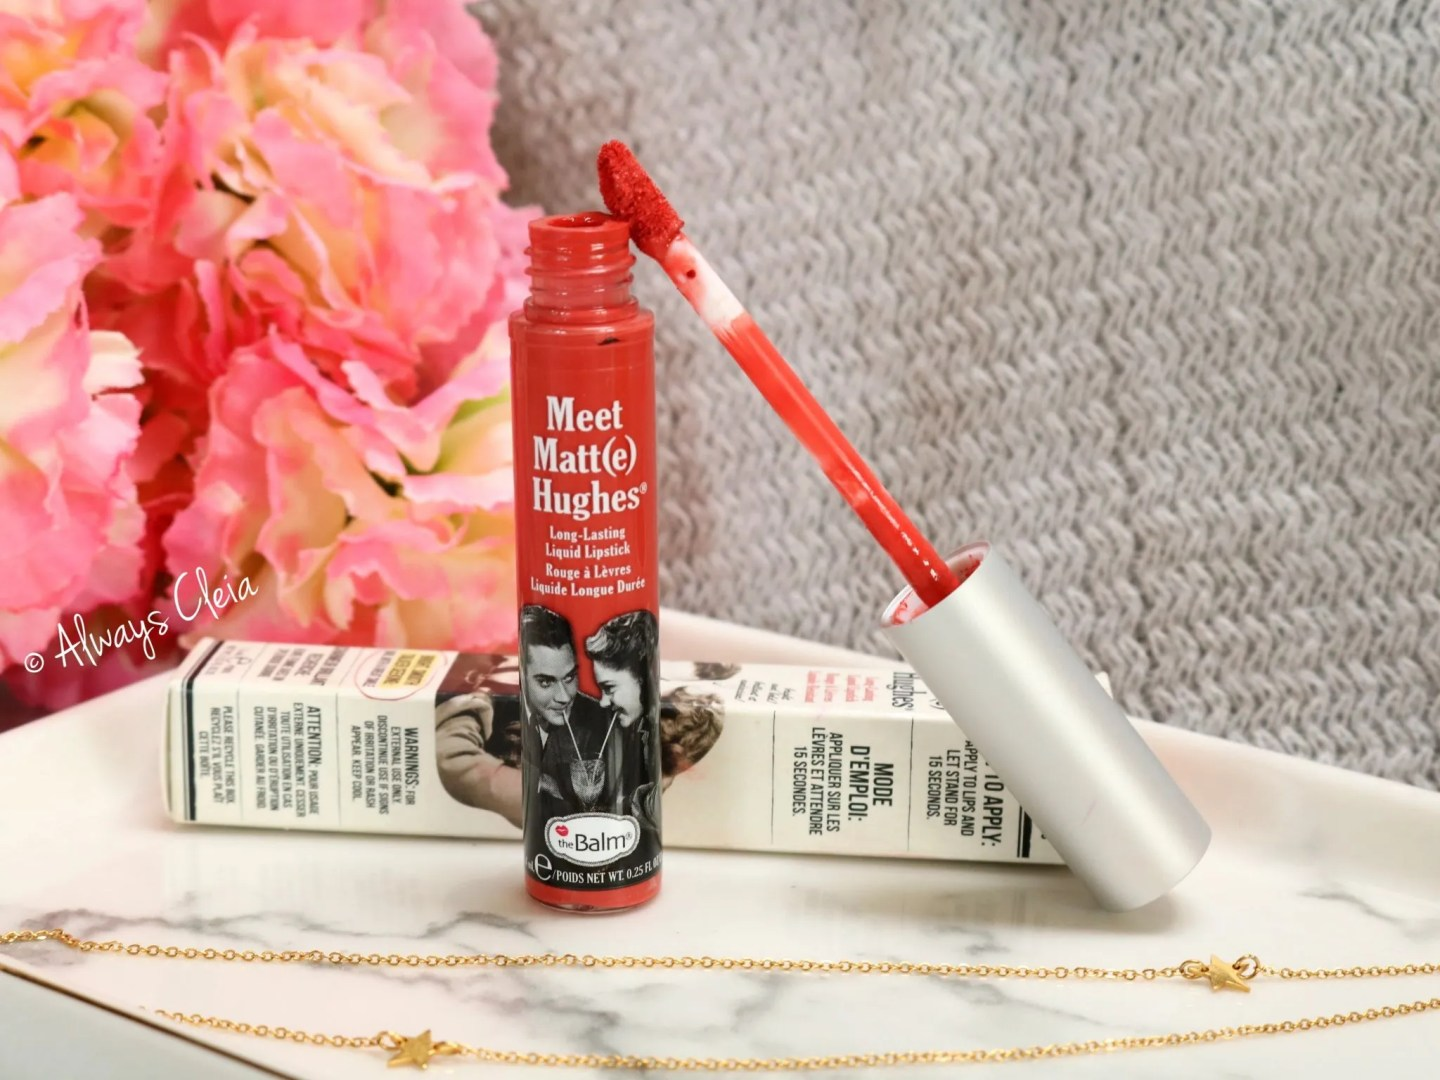 The Balm Meet Matte Hughes Lipstick in Honesty